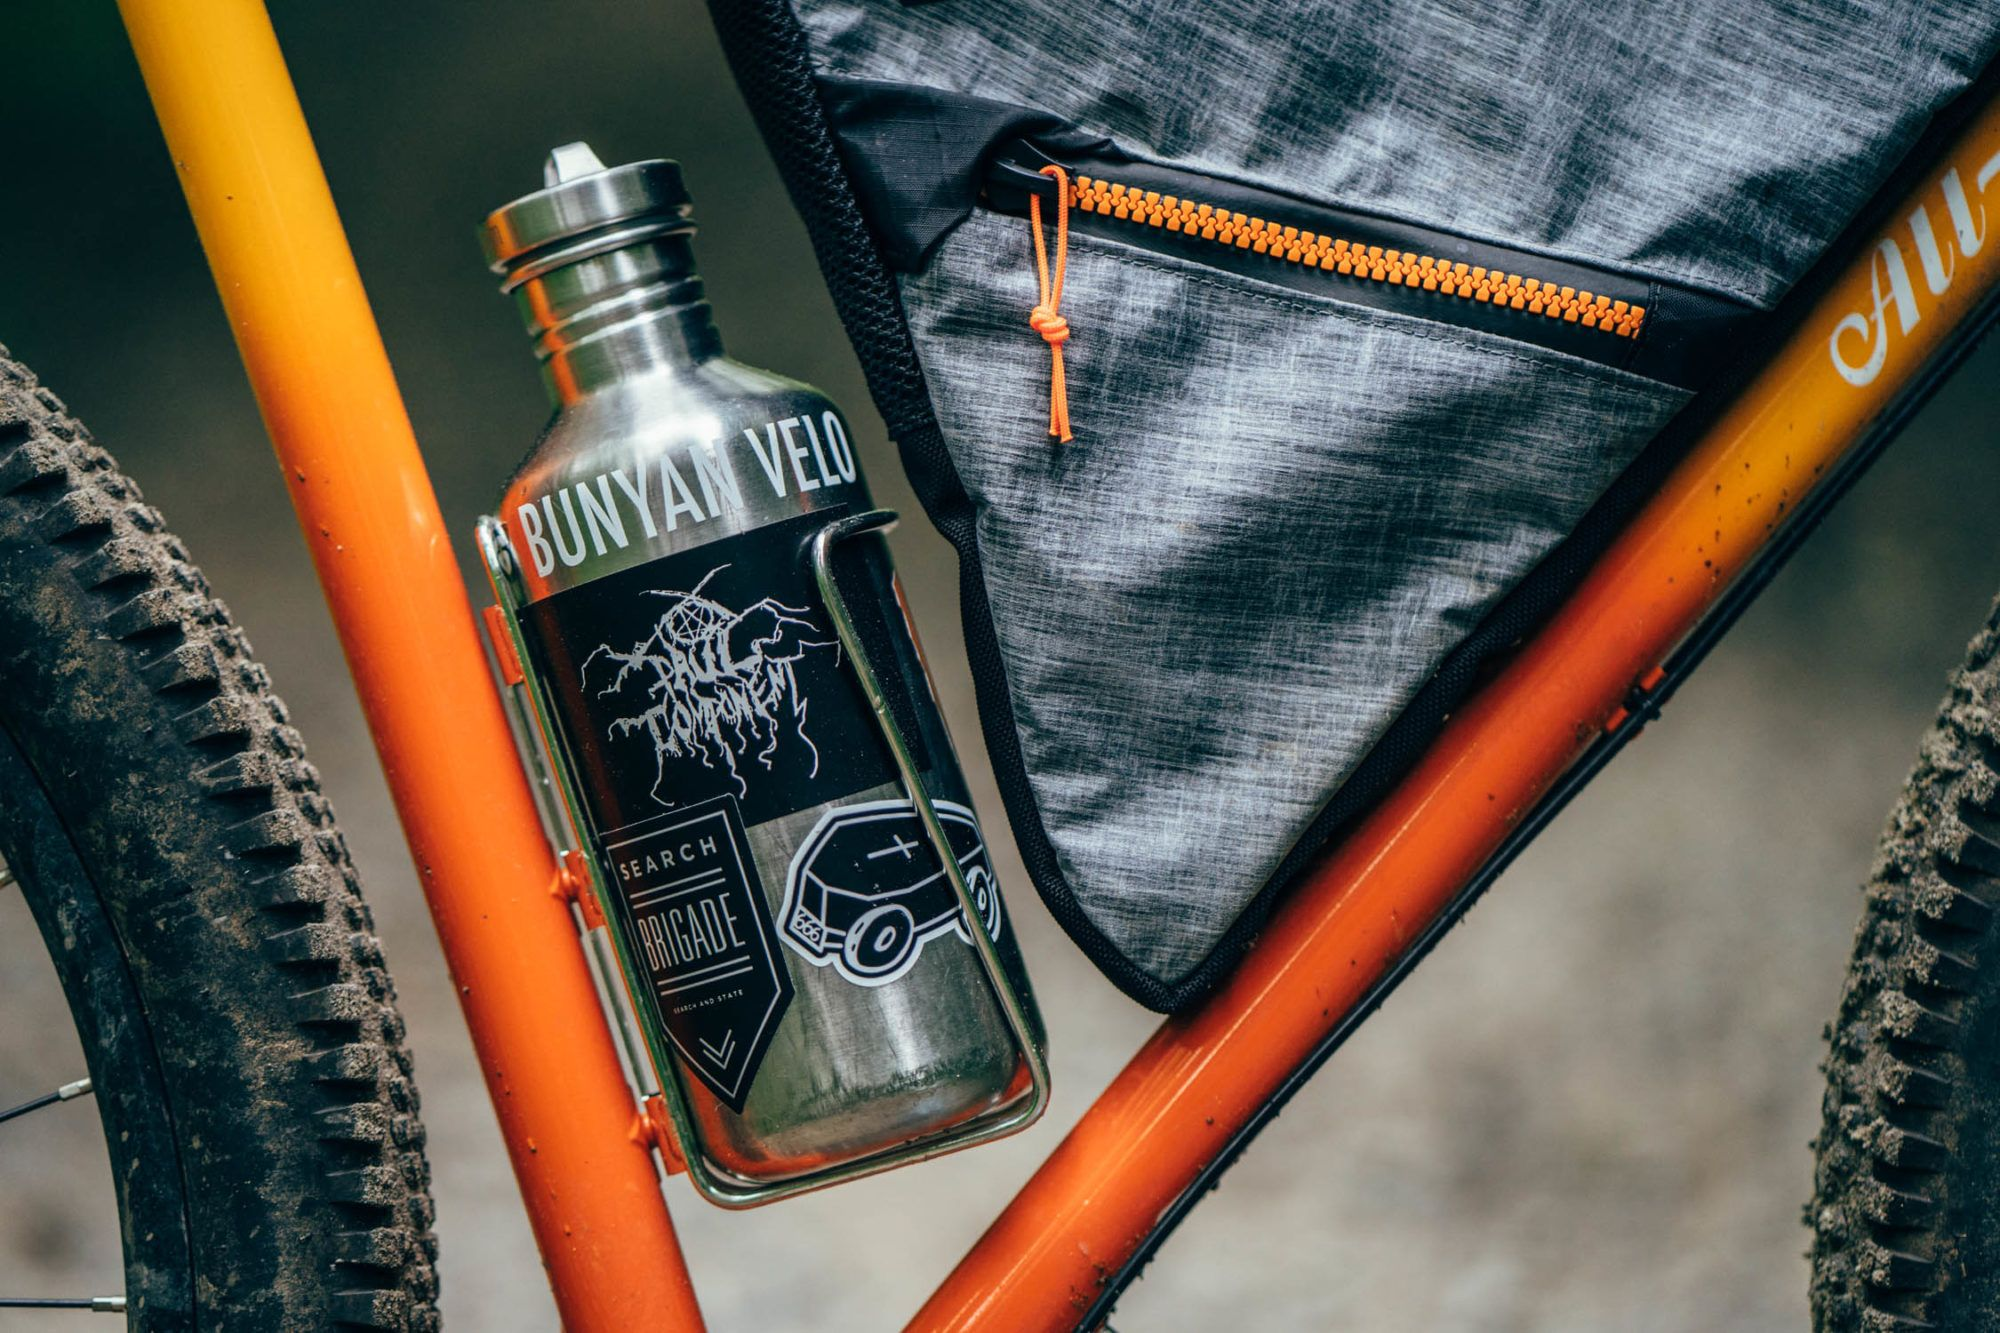 Complete List Of Useful Durable And Oversized Bottle Cages For